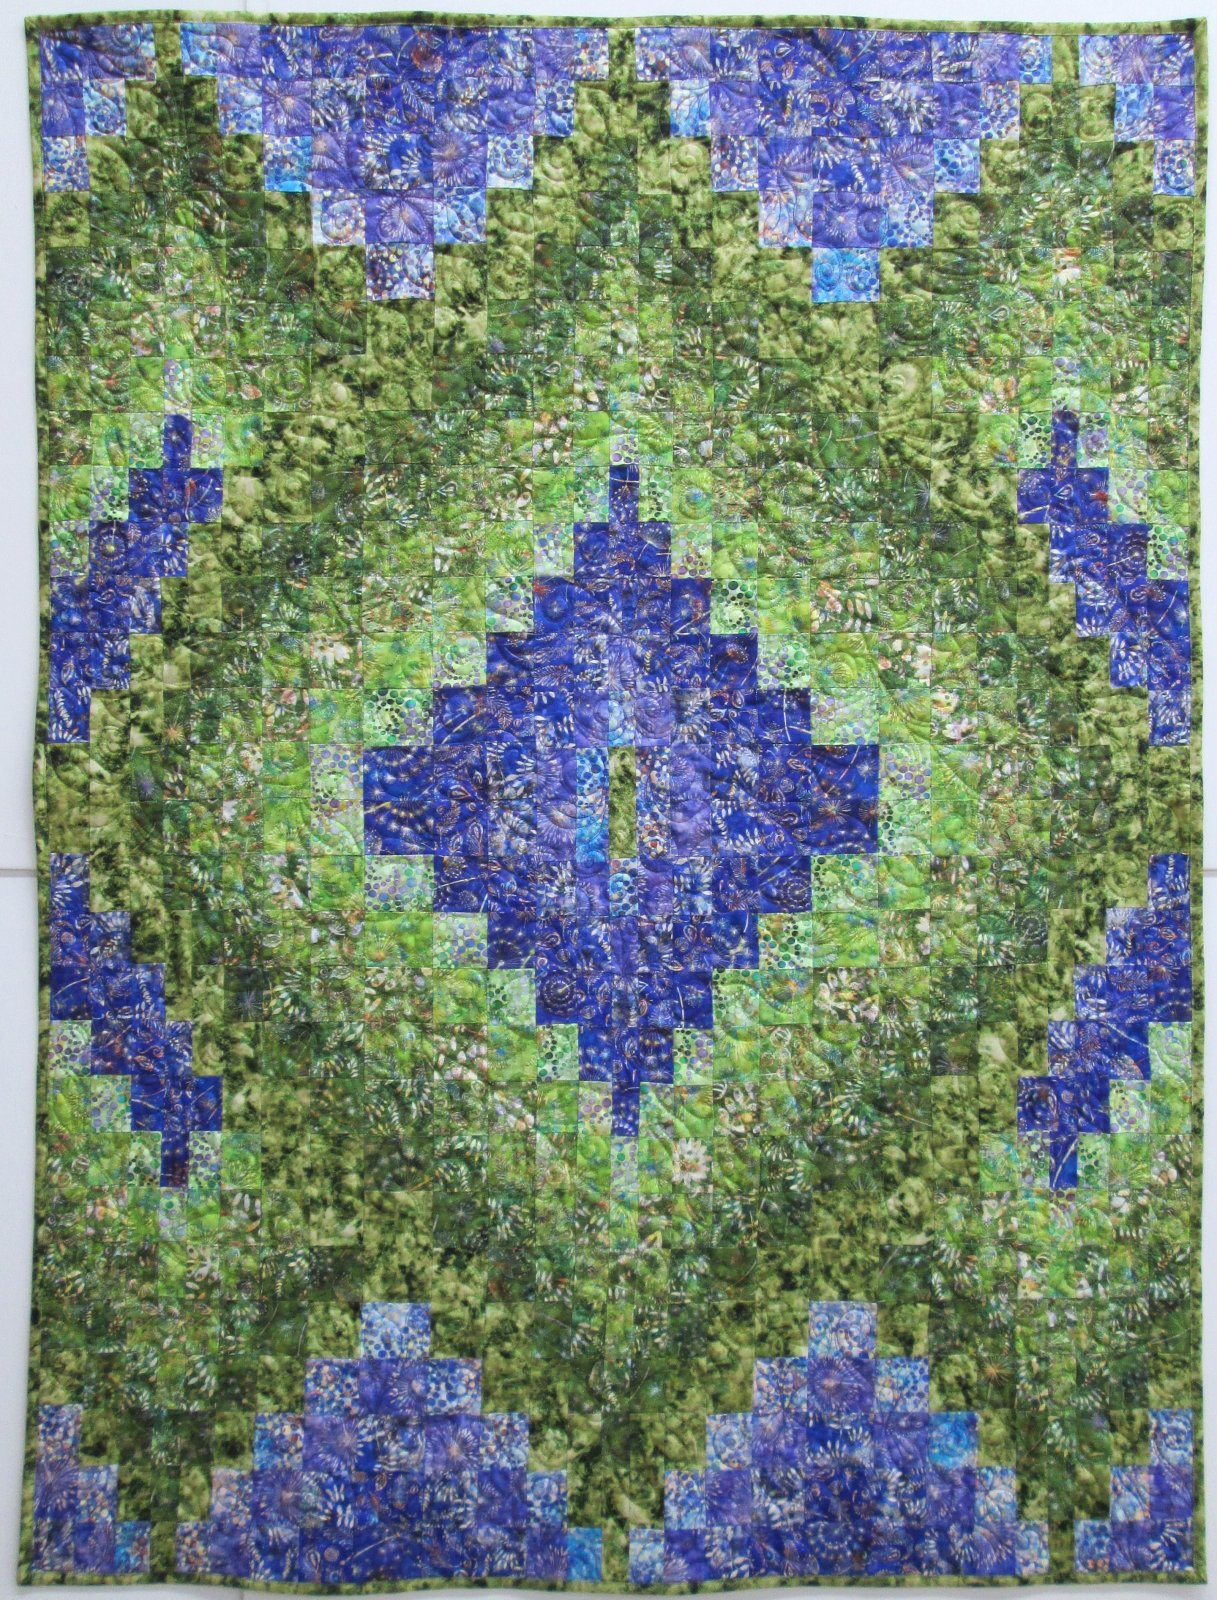 Botanica Layered Diamonds Quilt Kit